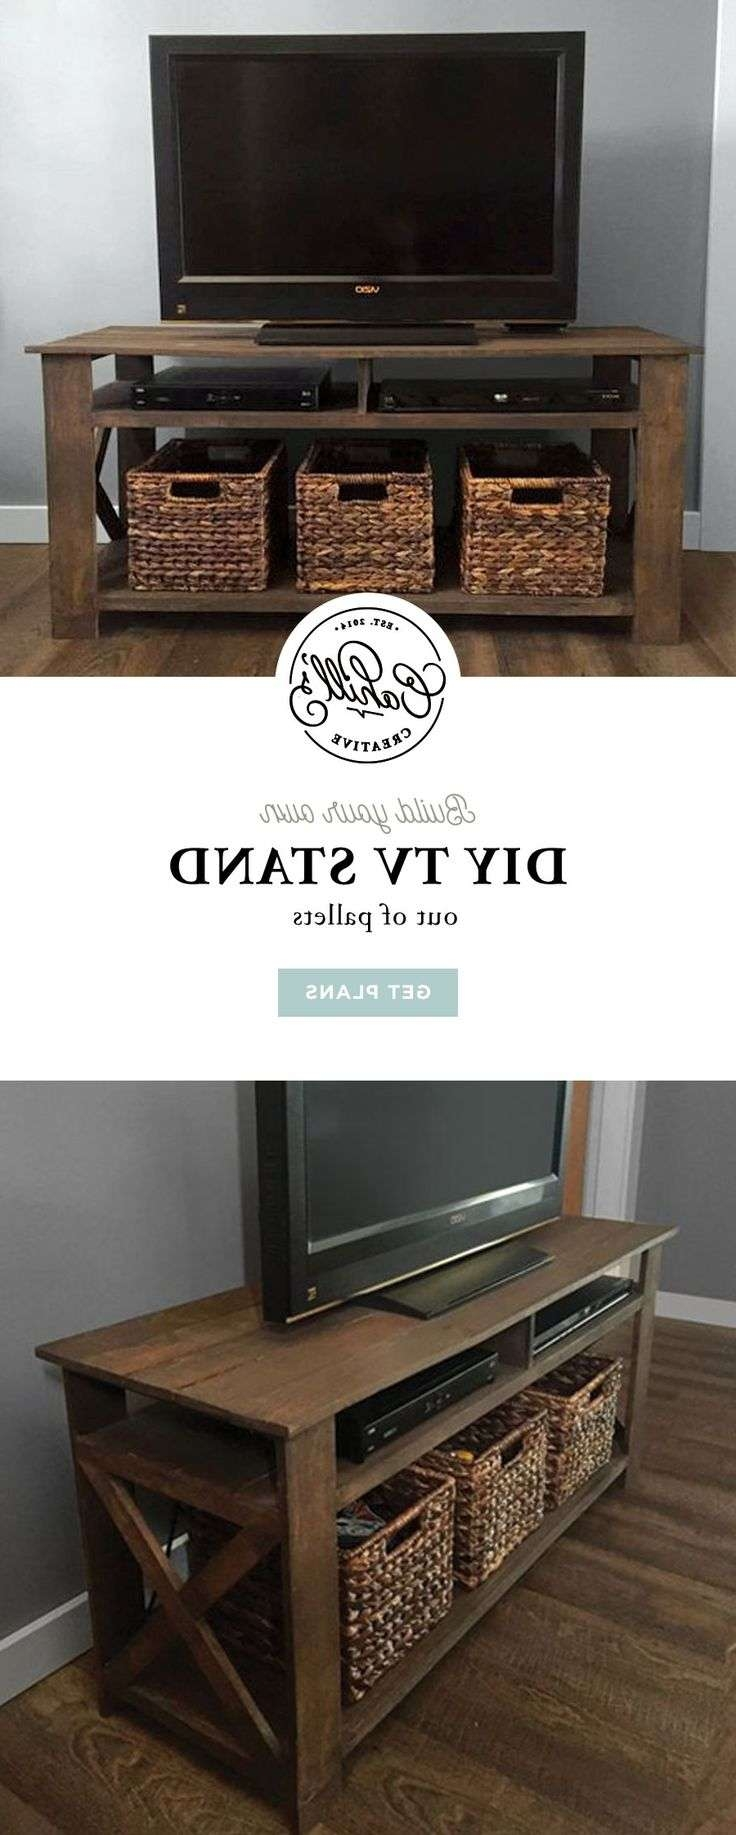 Best 25+ Antique Tv Stands Ideas On Pinterest | Tv Stand Ideas For Pertaining To Vintage Style Tv Cabinets (View 5 of 20)